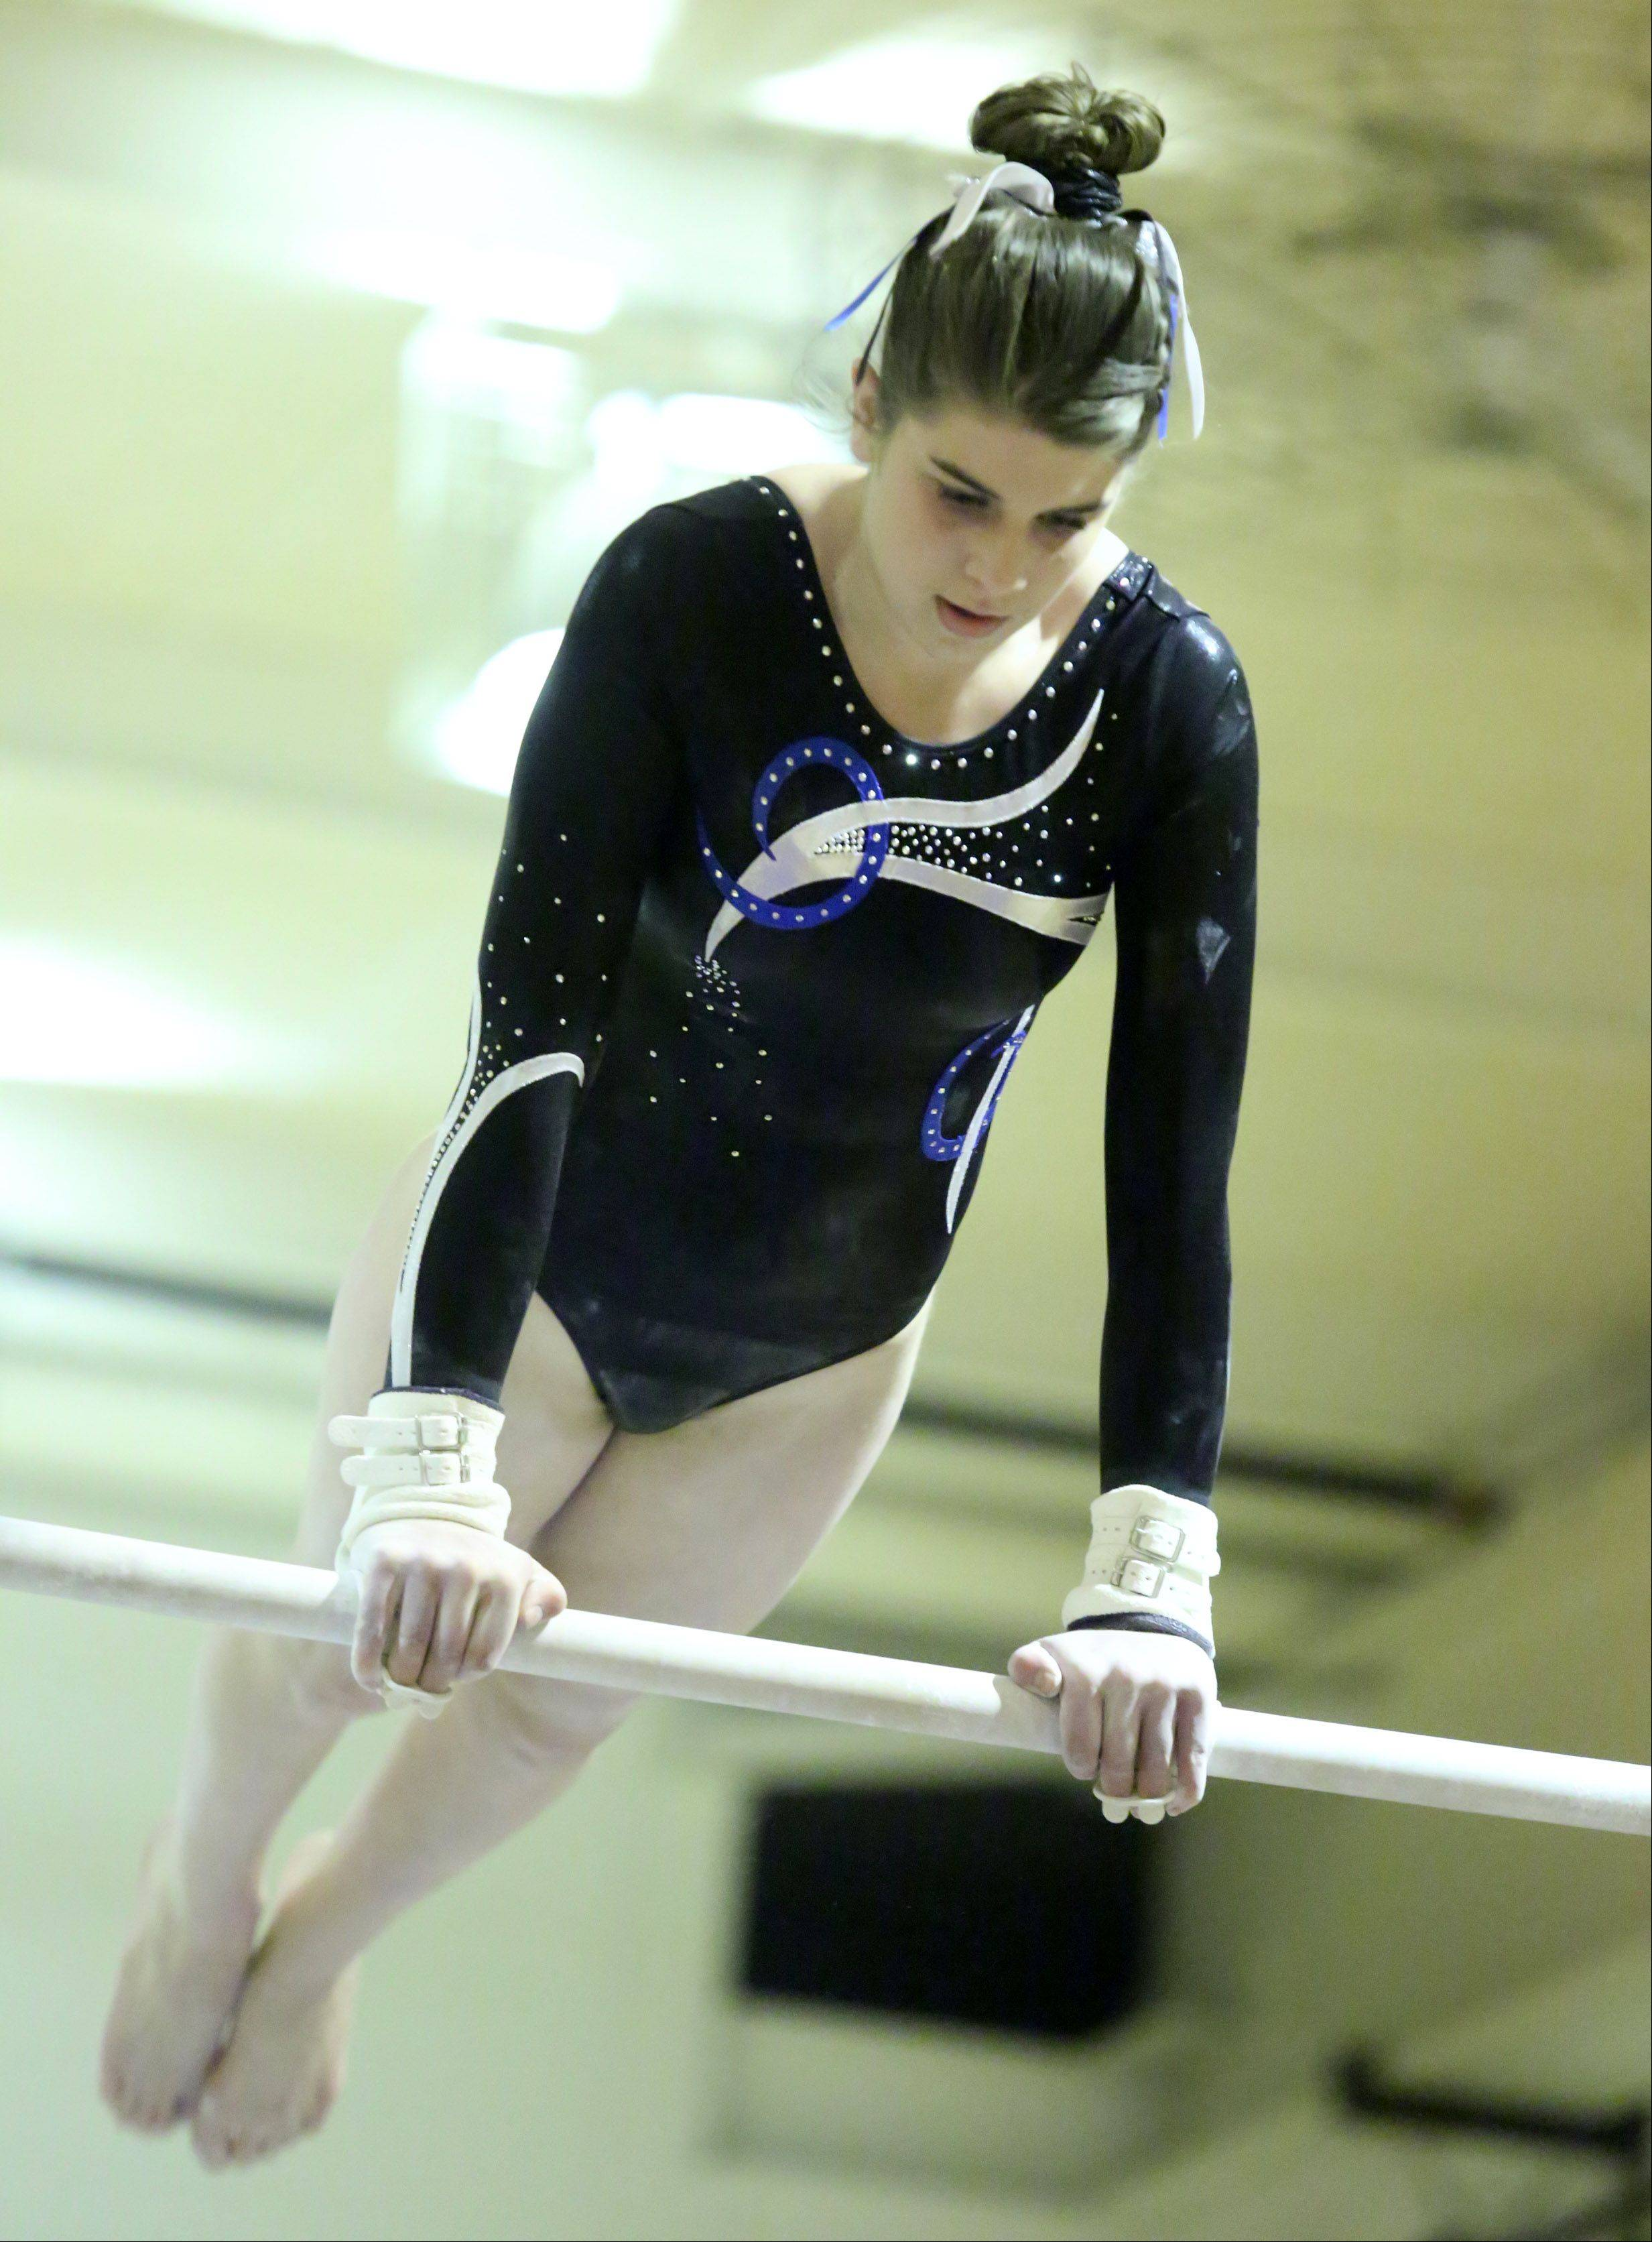 Prospect's Meghan Schmit competes on uneven bars at Prospect on Saturday.